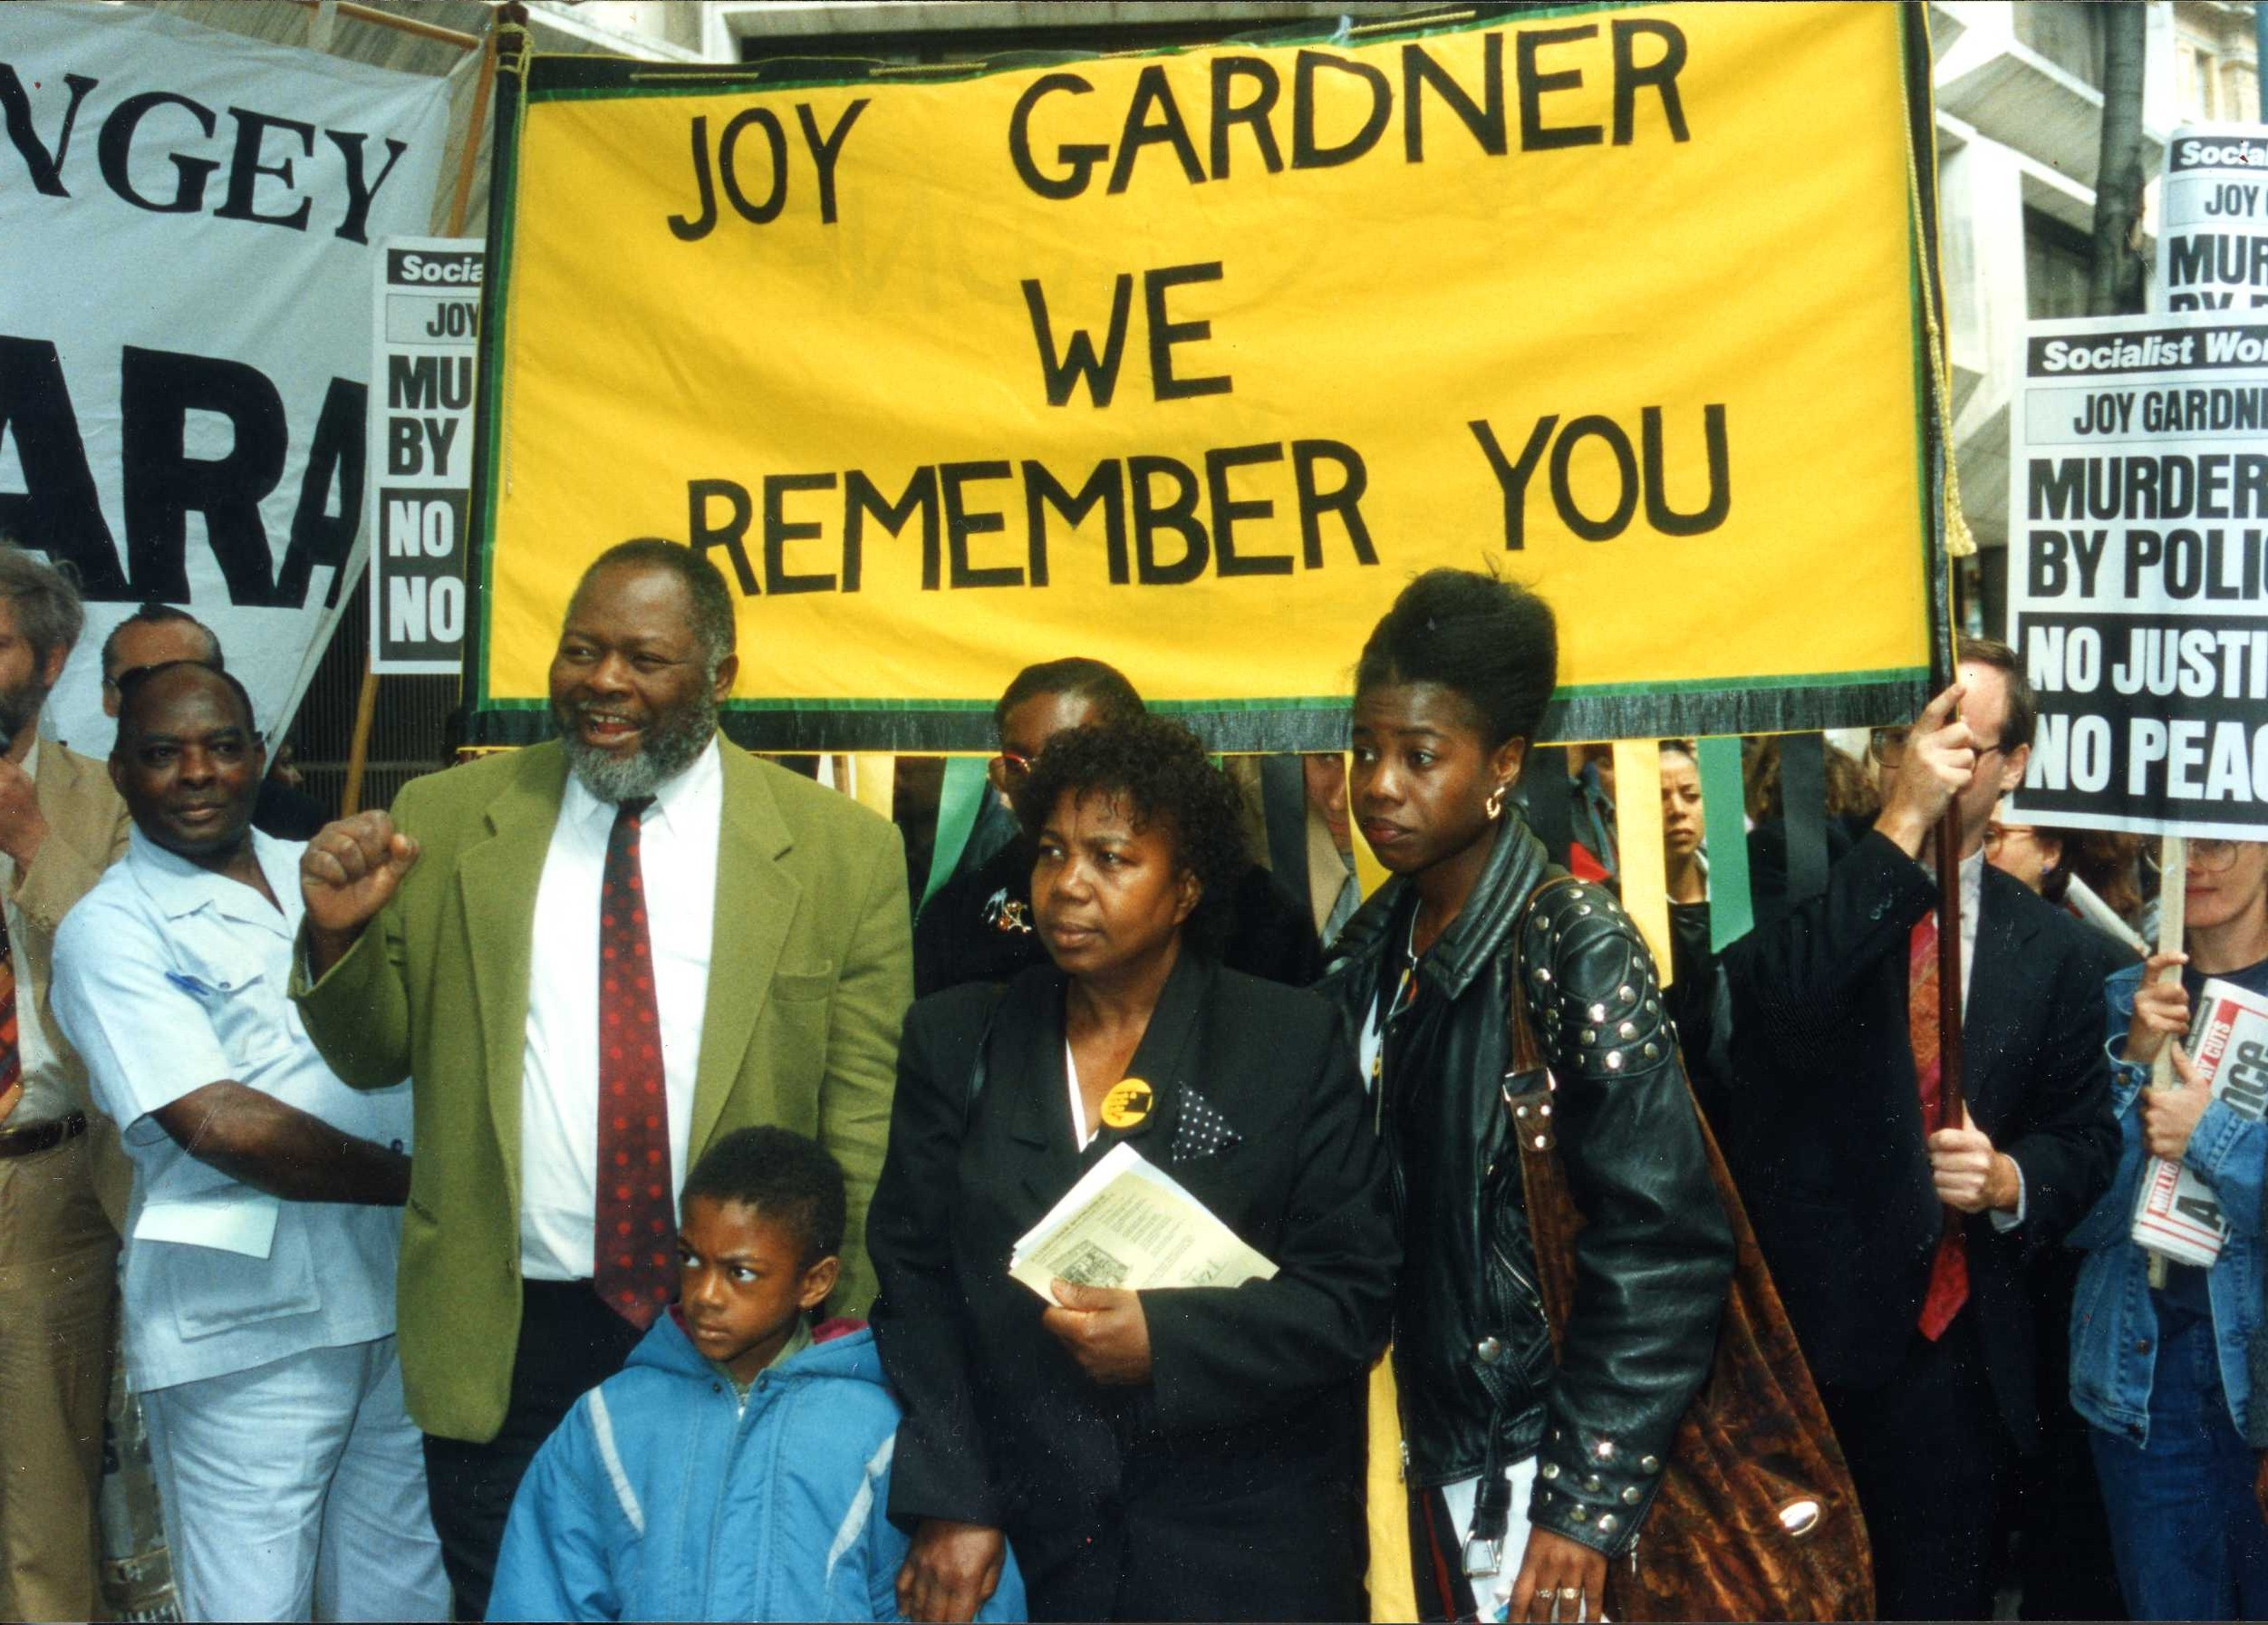 Photograph of a protest against the death of Joy Gardner, ca. 1993. Image credit: Bernie Grant Archive/Bishopsgate Institute.